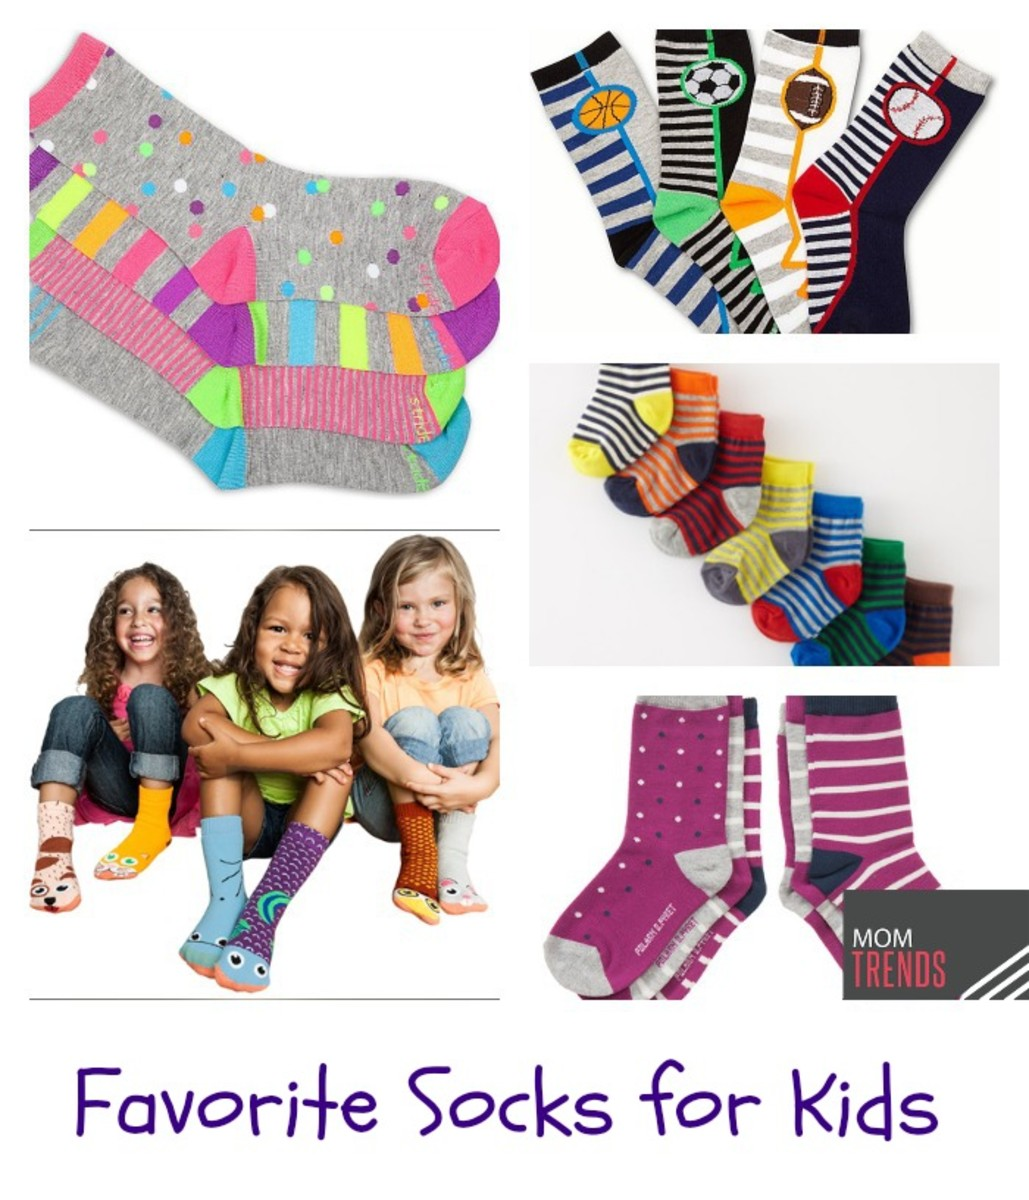 Favorite Socks for Kids.jpg.jpg